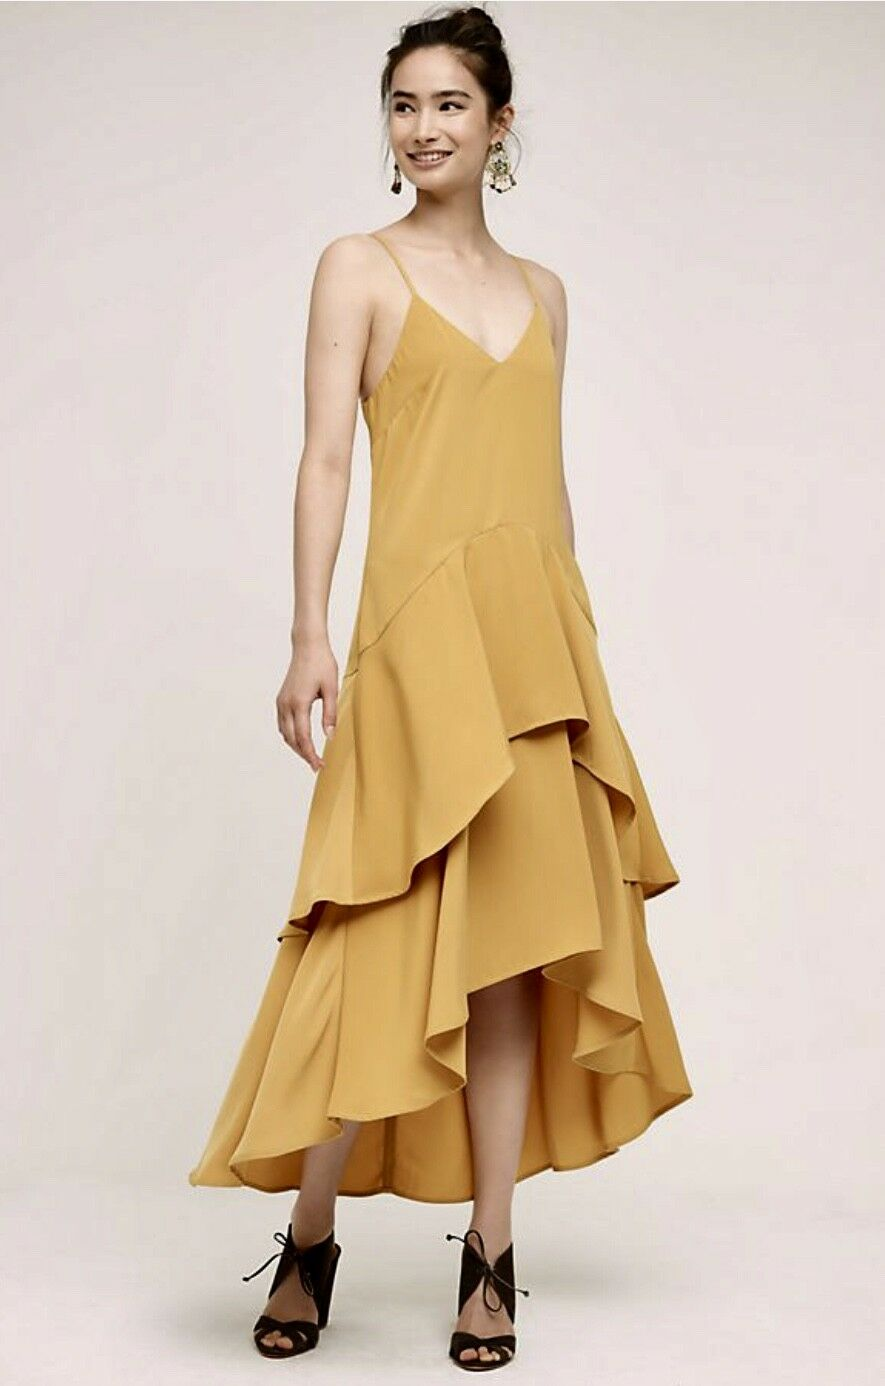 Anthropologie Maxi Dress  Gold Gelb Drapy 2 Tier Ruffle XS NEW